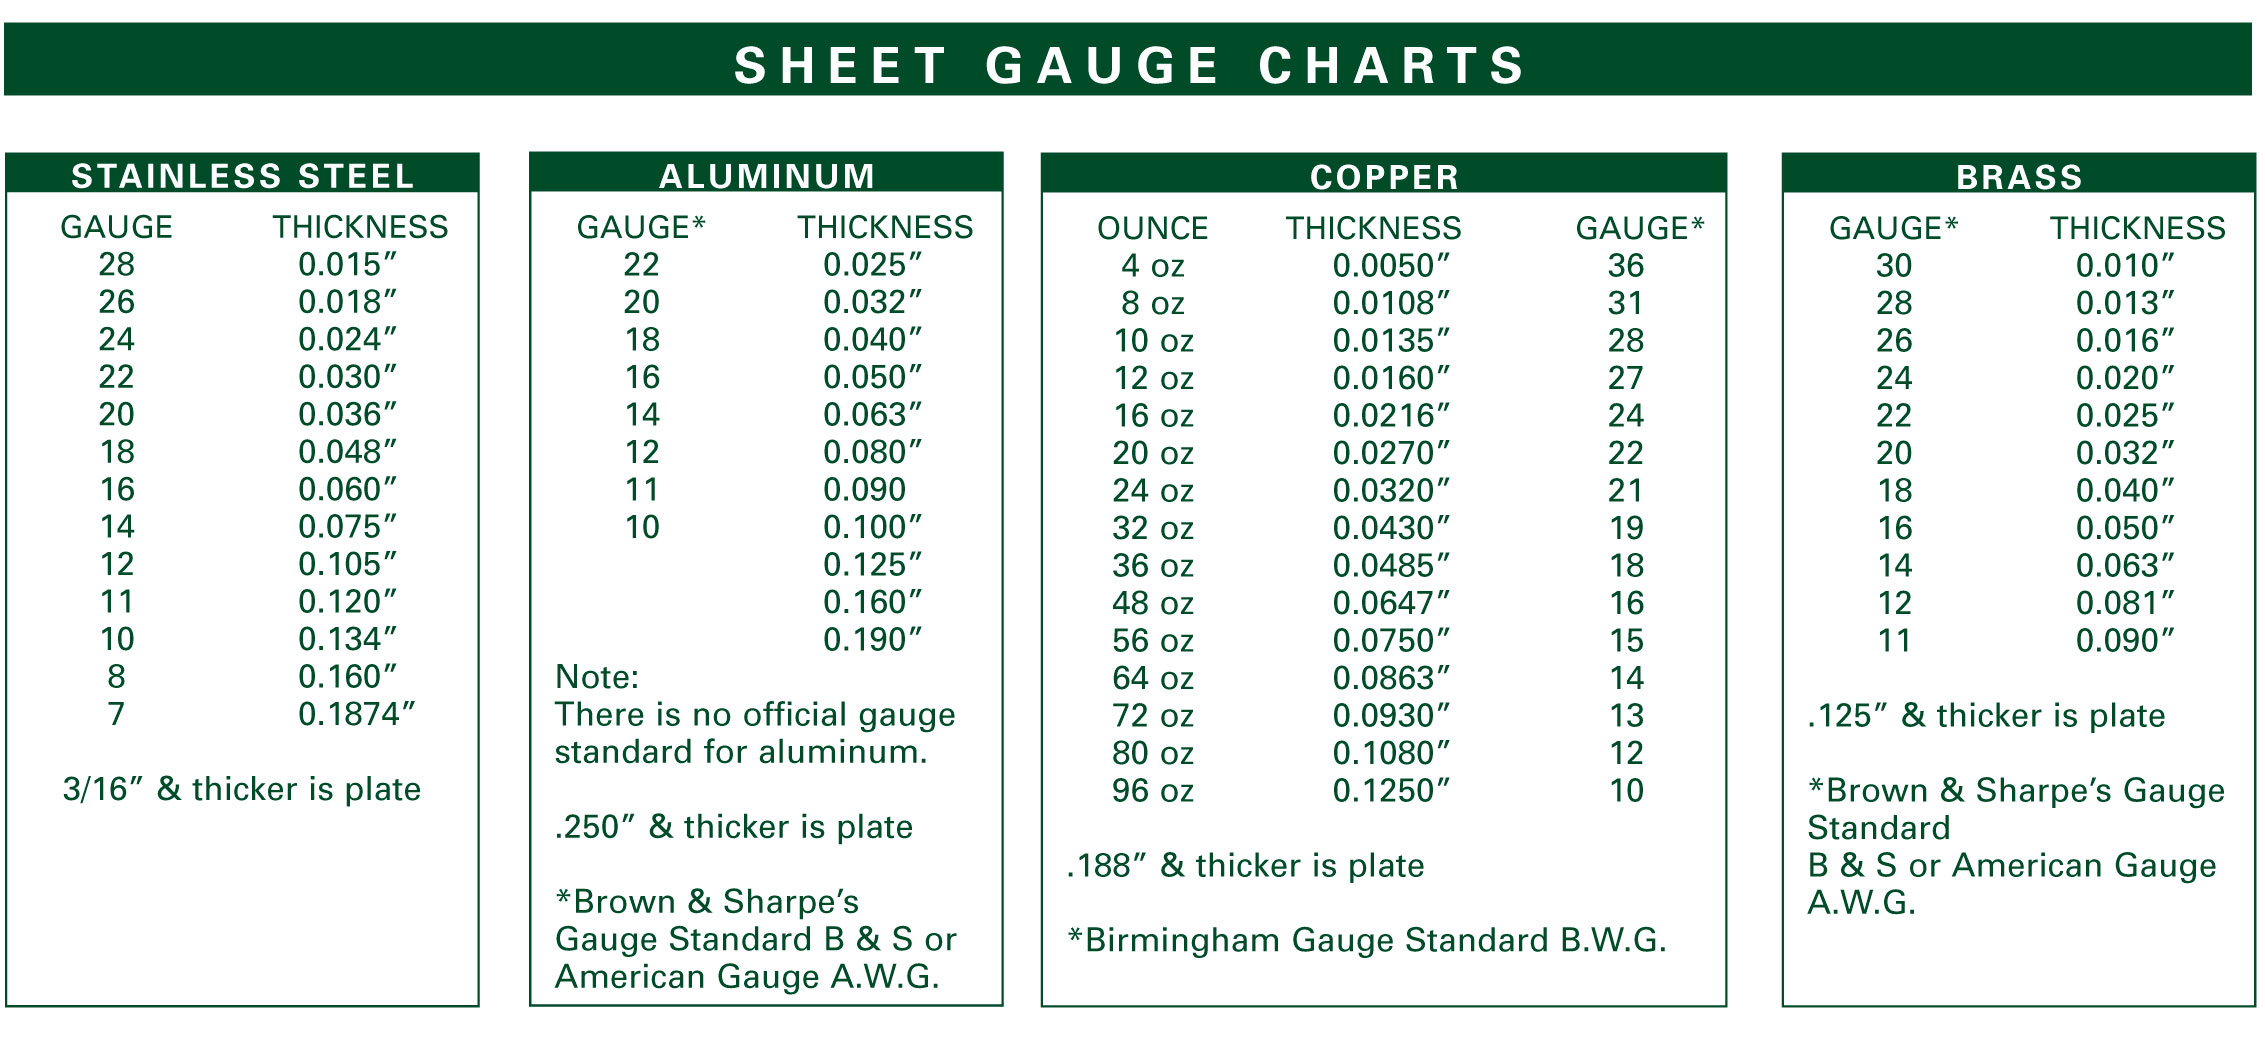 Sheet gauge seatledavidjoel sheet gauge greentooth Choice Image